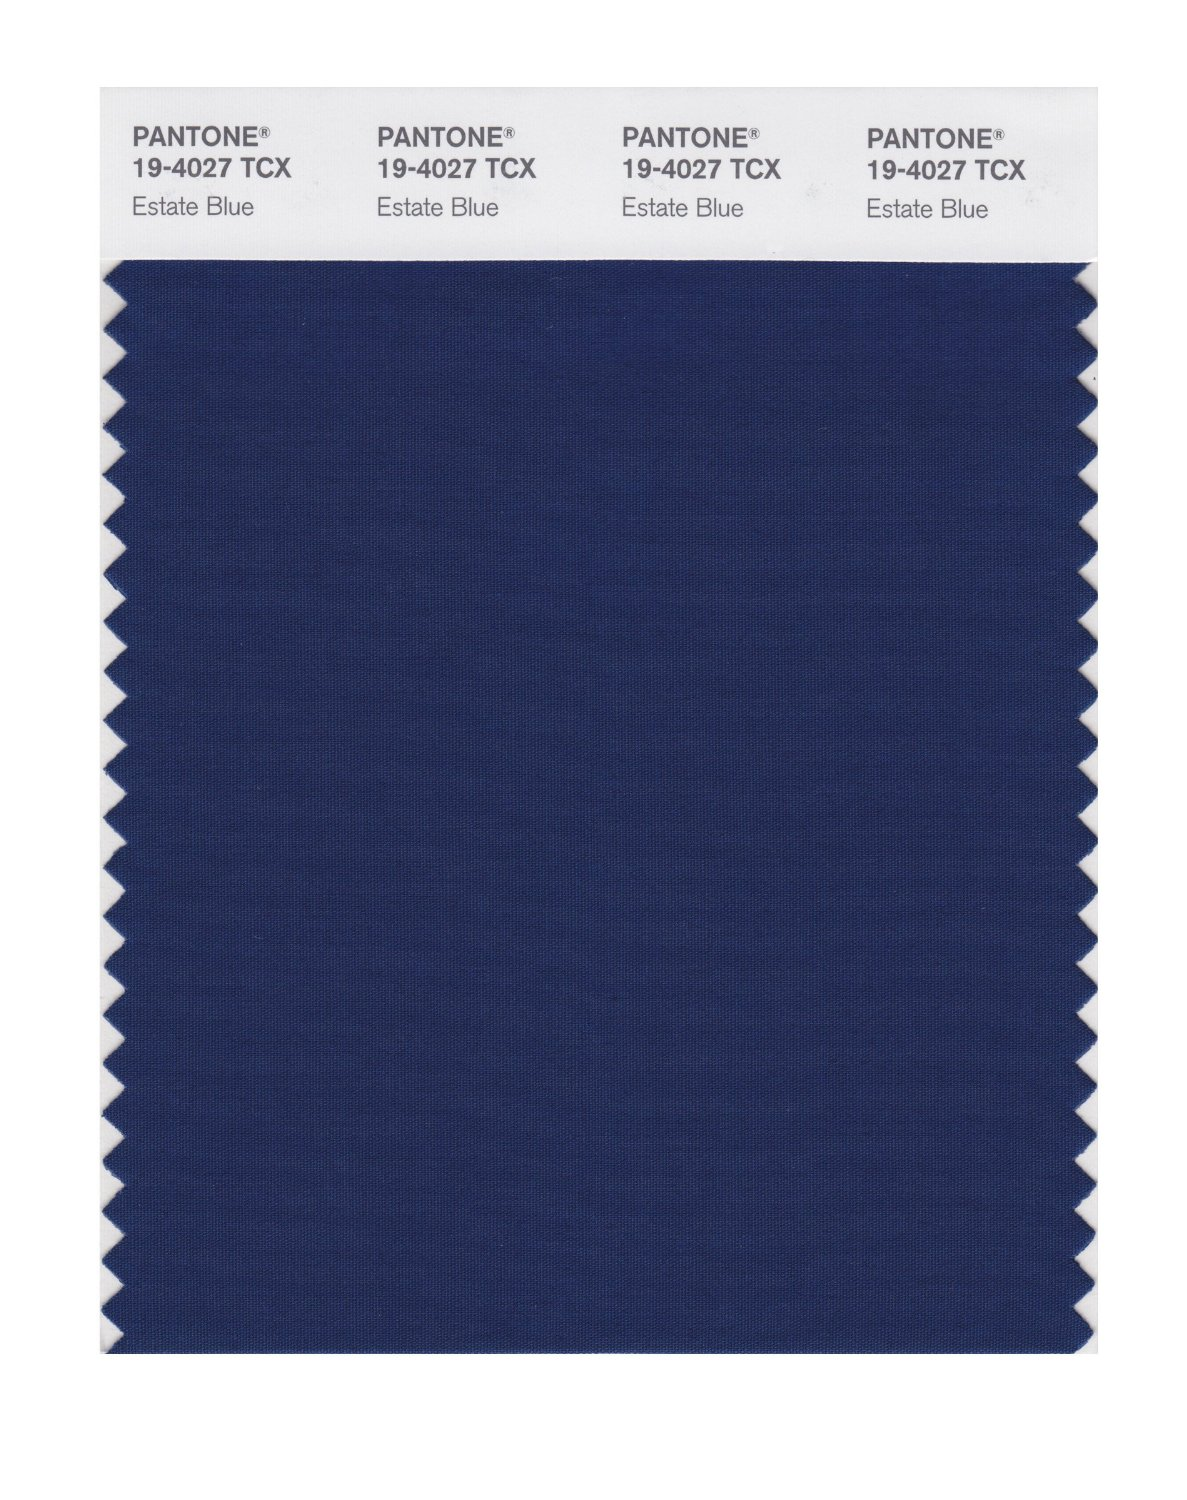 Pantone Smart Swatch 19-4027 Estate Blue